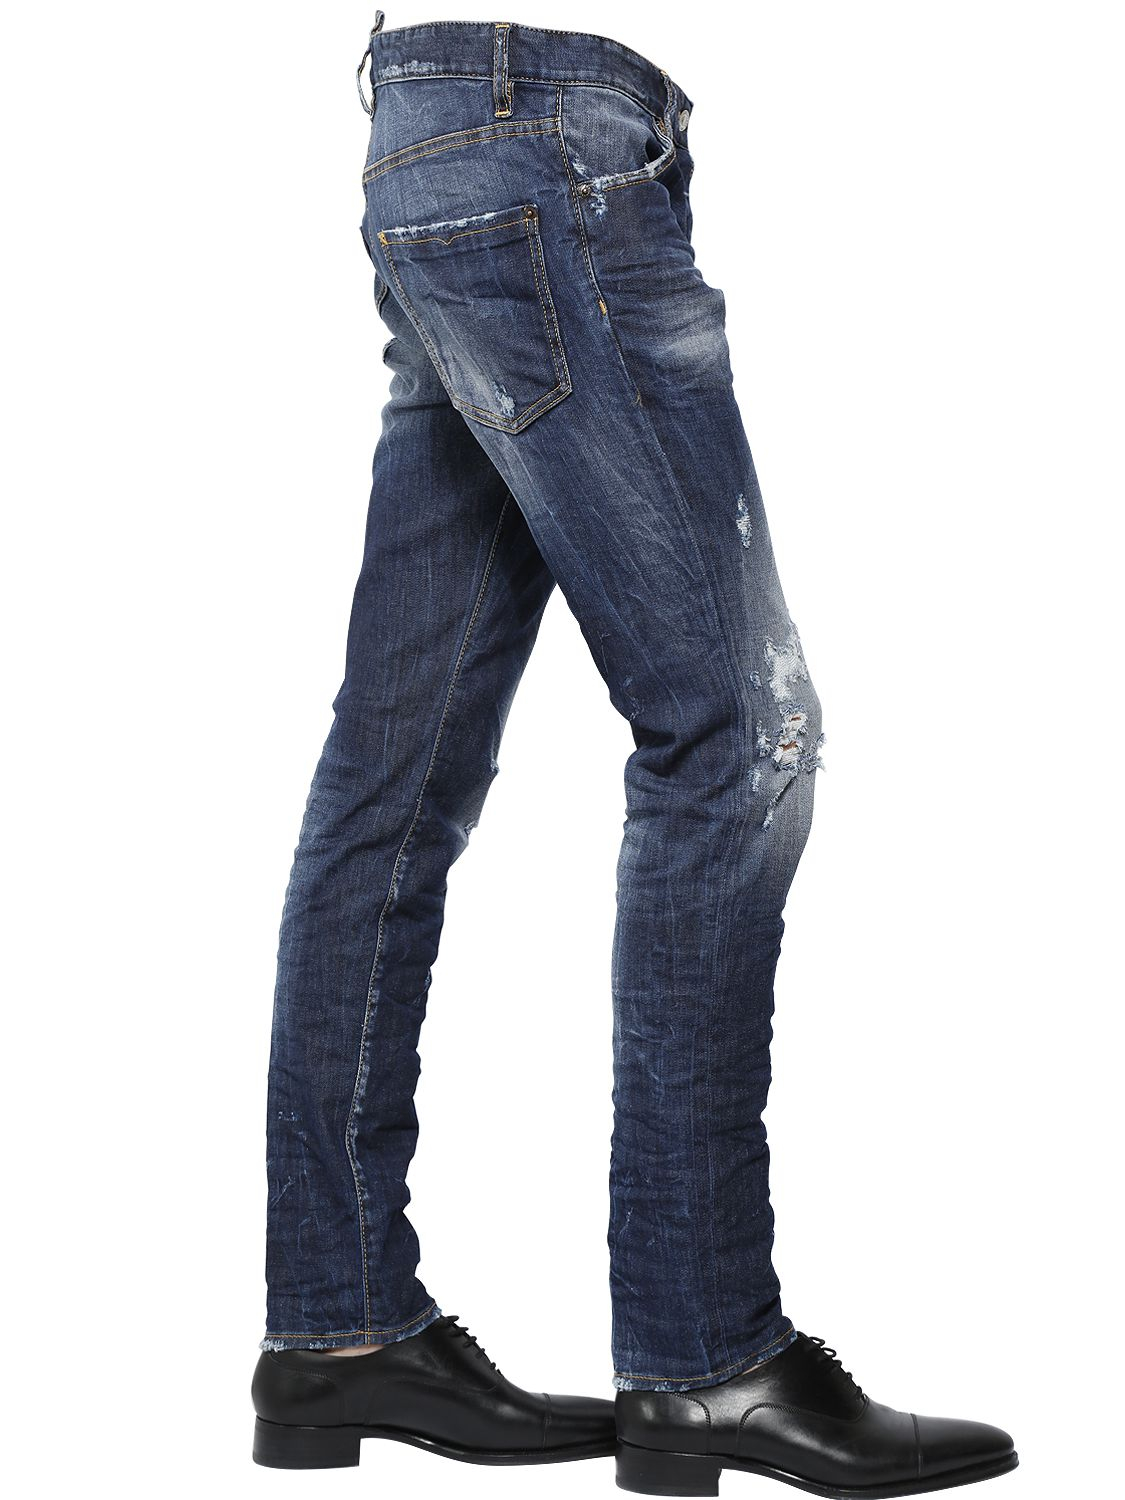 DSquared² 16.5cm Cool Guy Distressed Stretch Jeans in Blue for Men